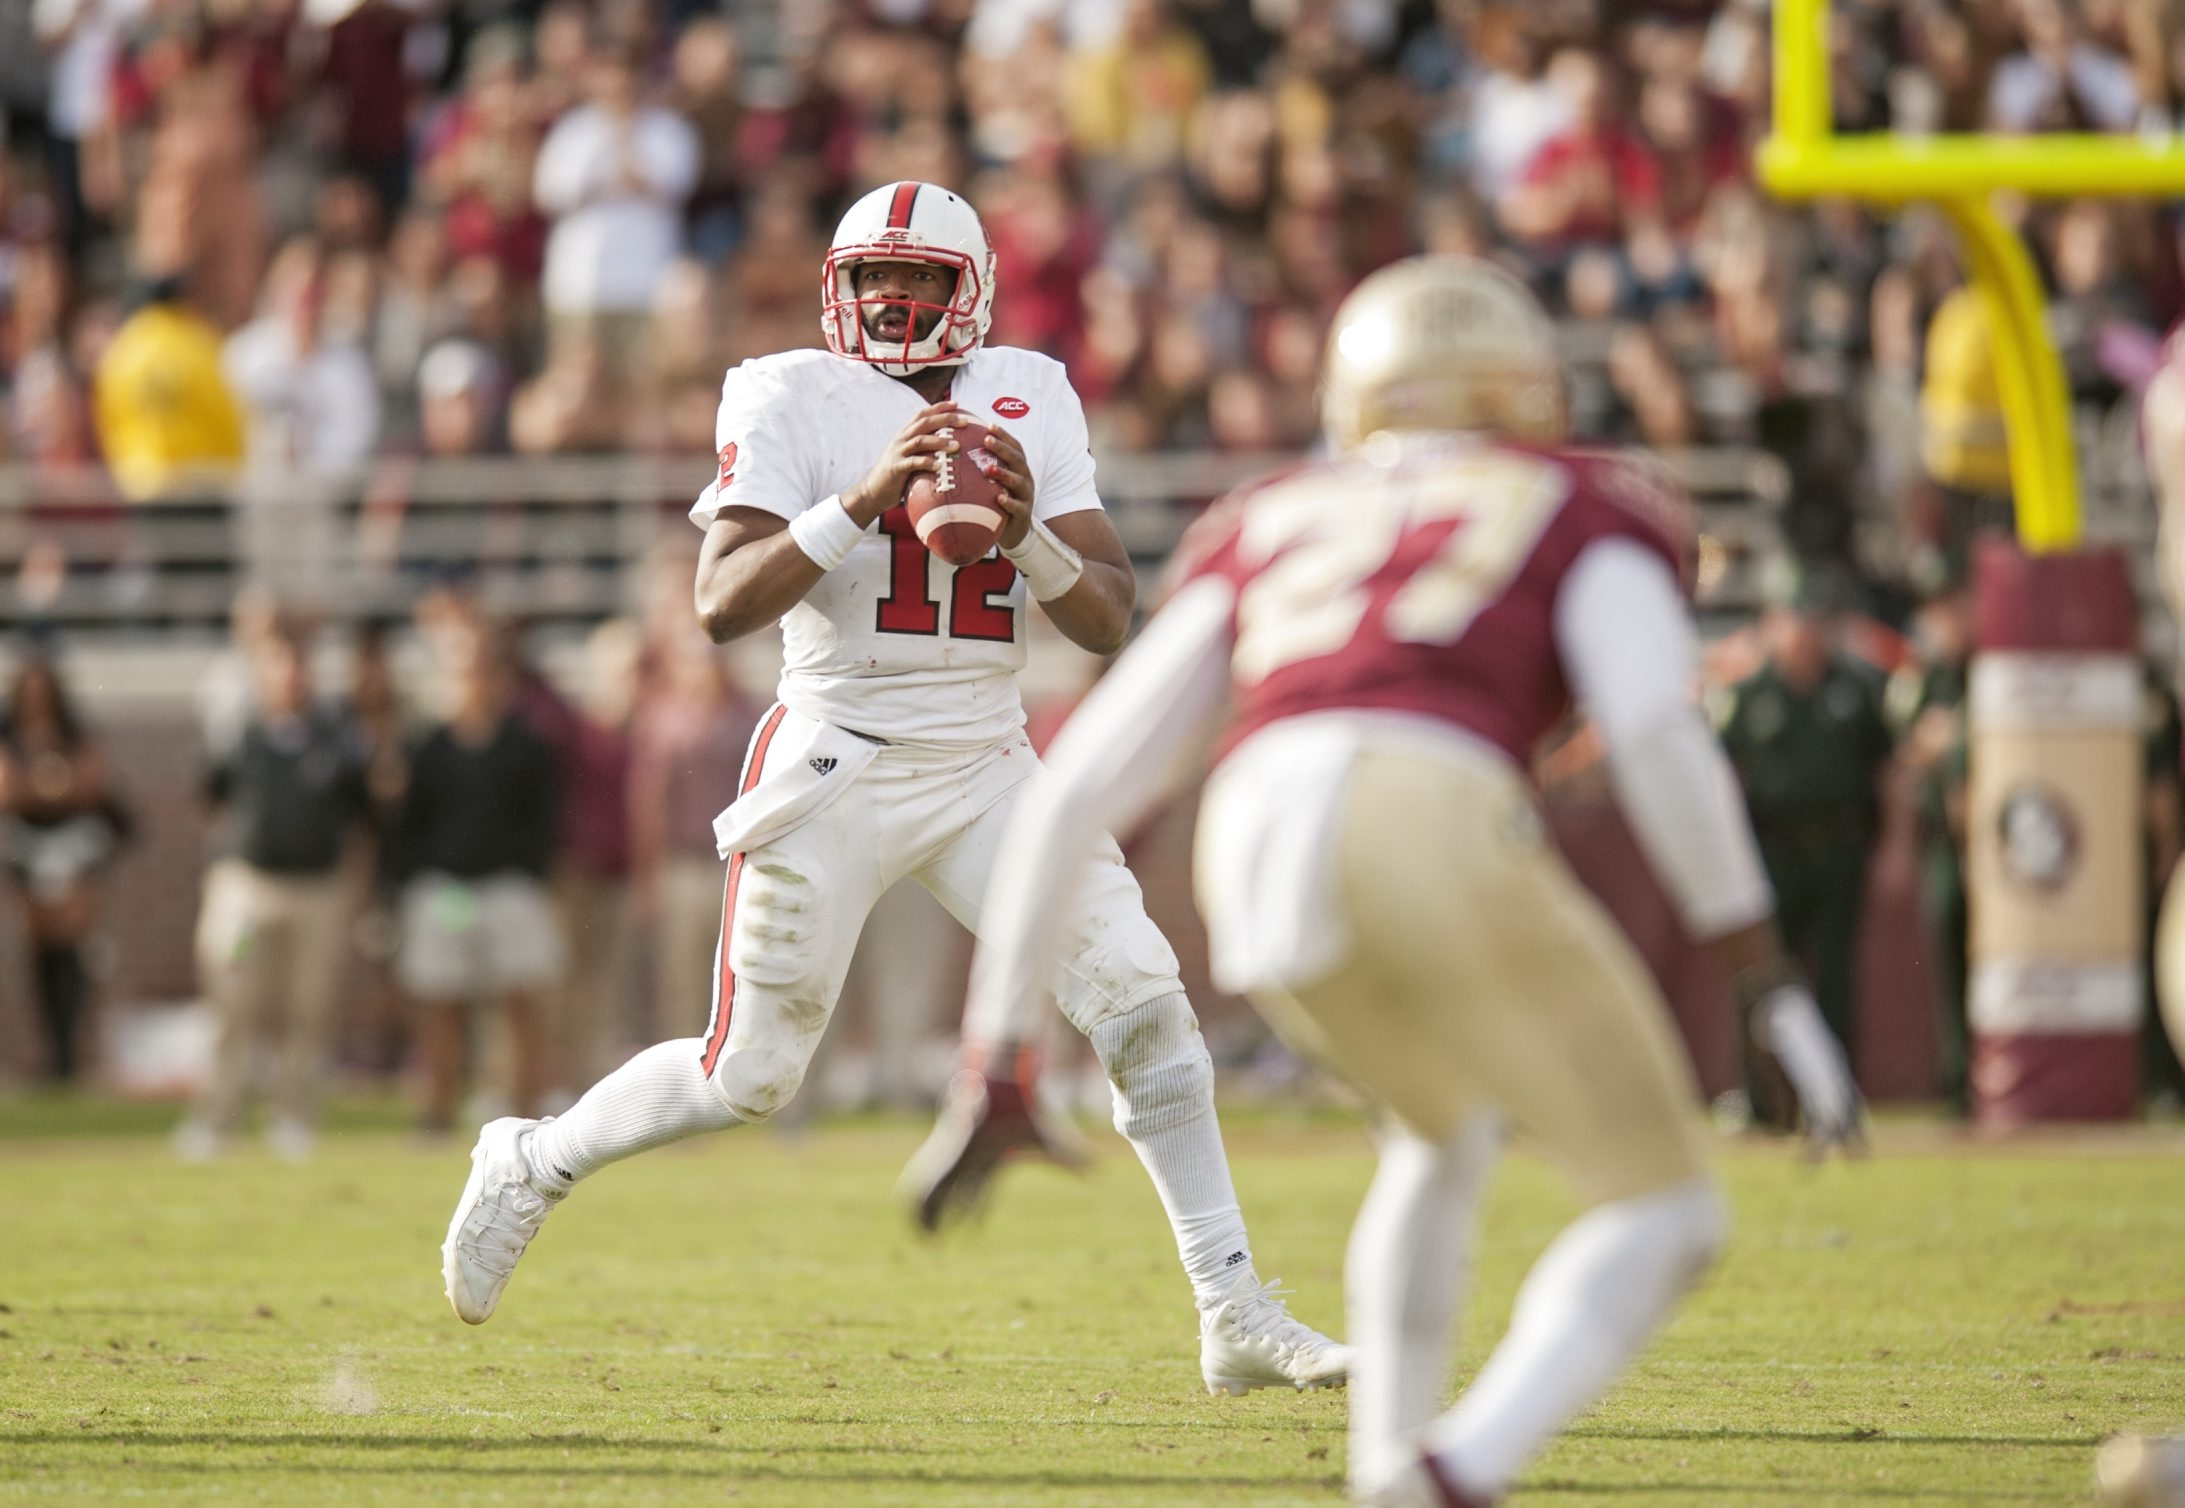 N.C. State quarterback Jacoby Brissett directed a pro-style offense with the Wolfpack that required NFL-style throws.